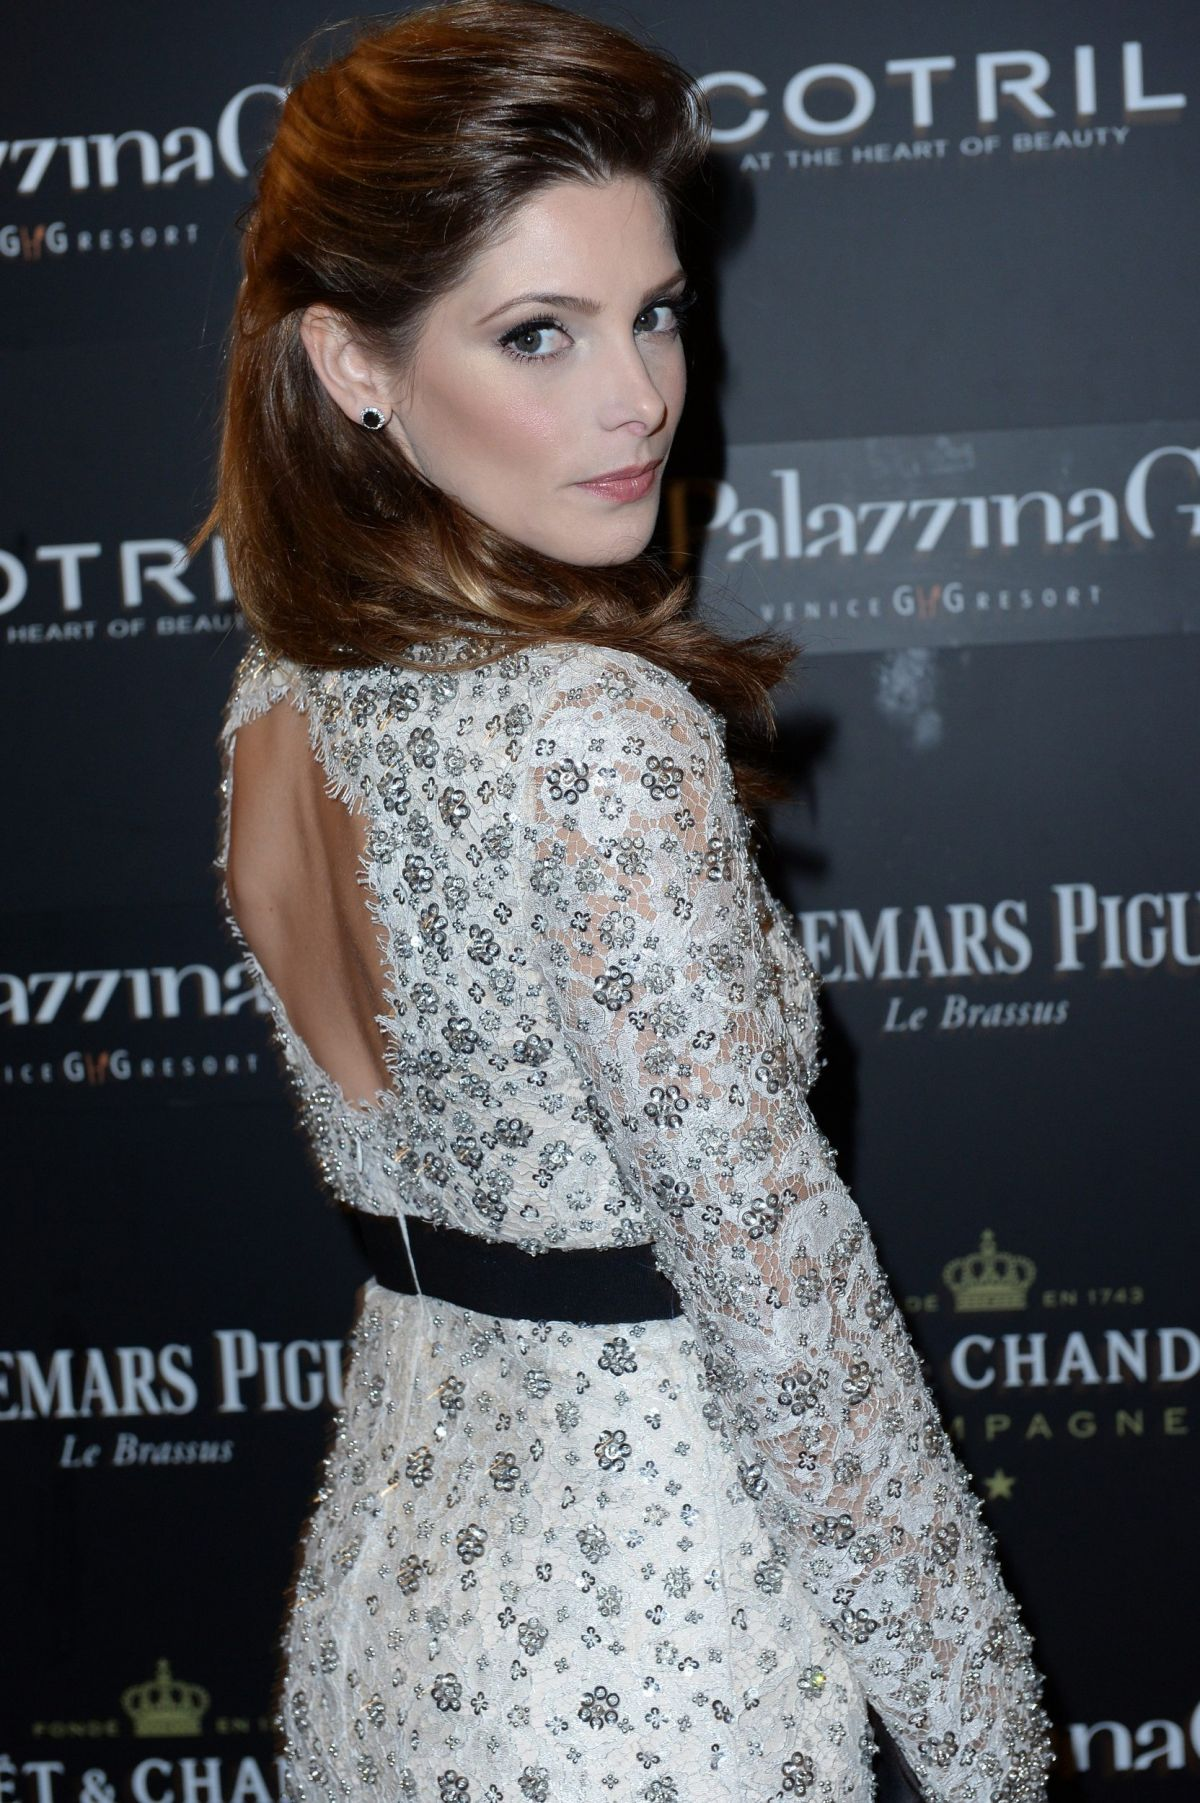 ASHLEY GREENE at Burying the Ex Premiere Party in Venice